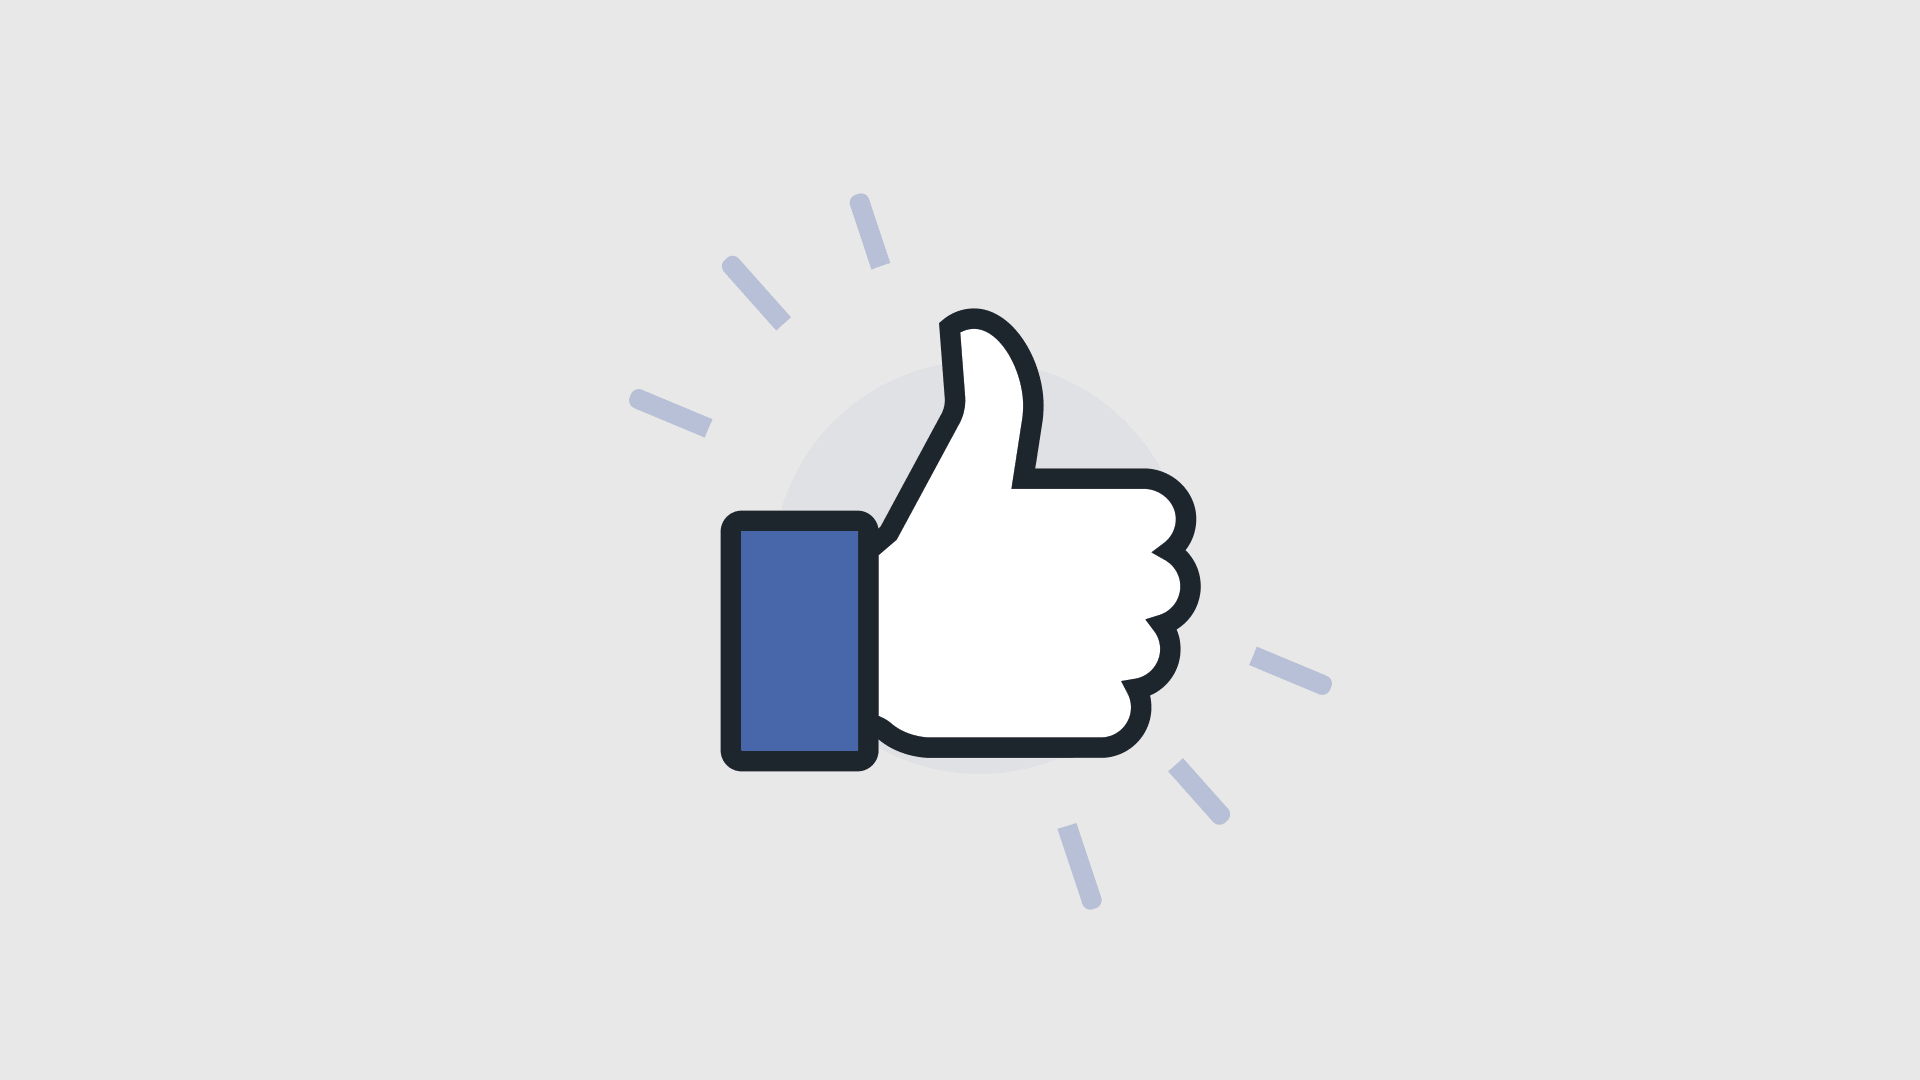 Step by step guide of how to set up Facebook Business Manager